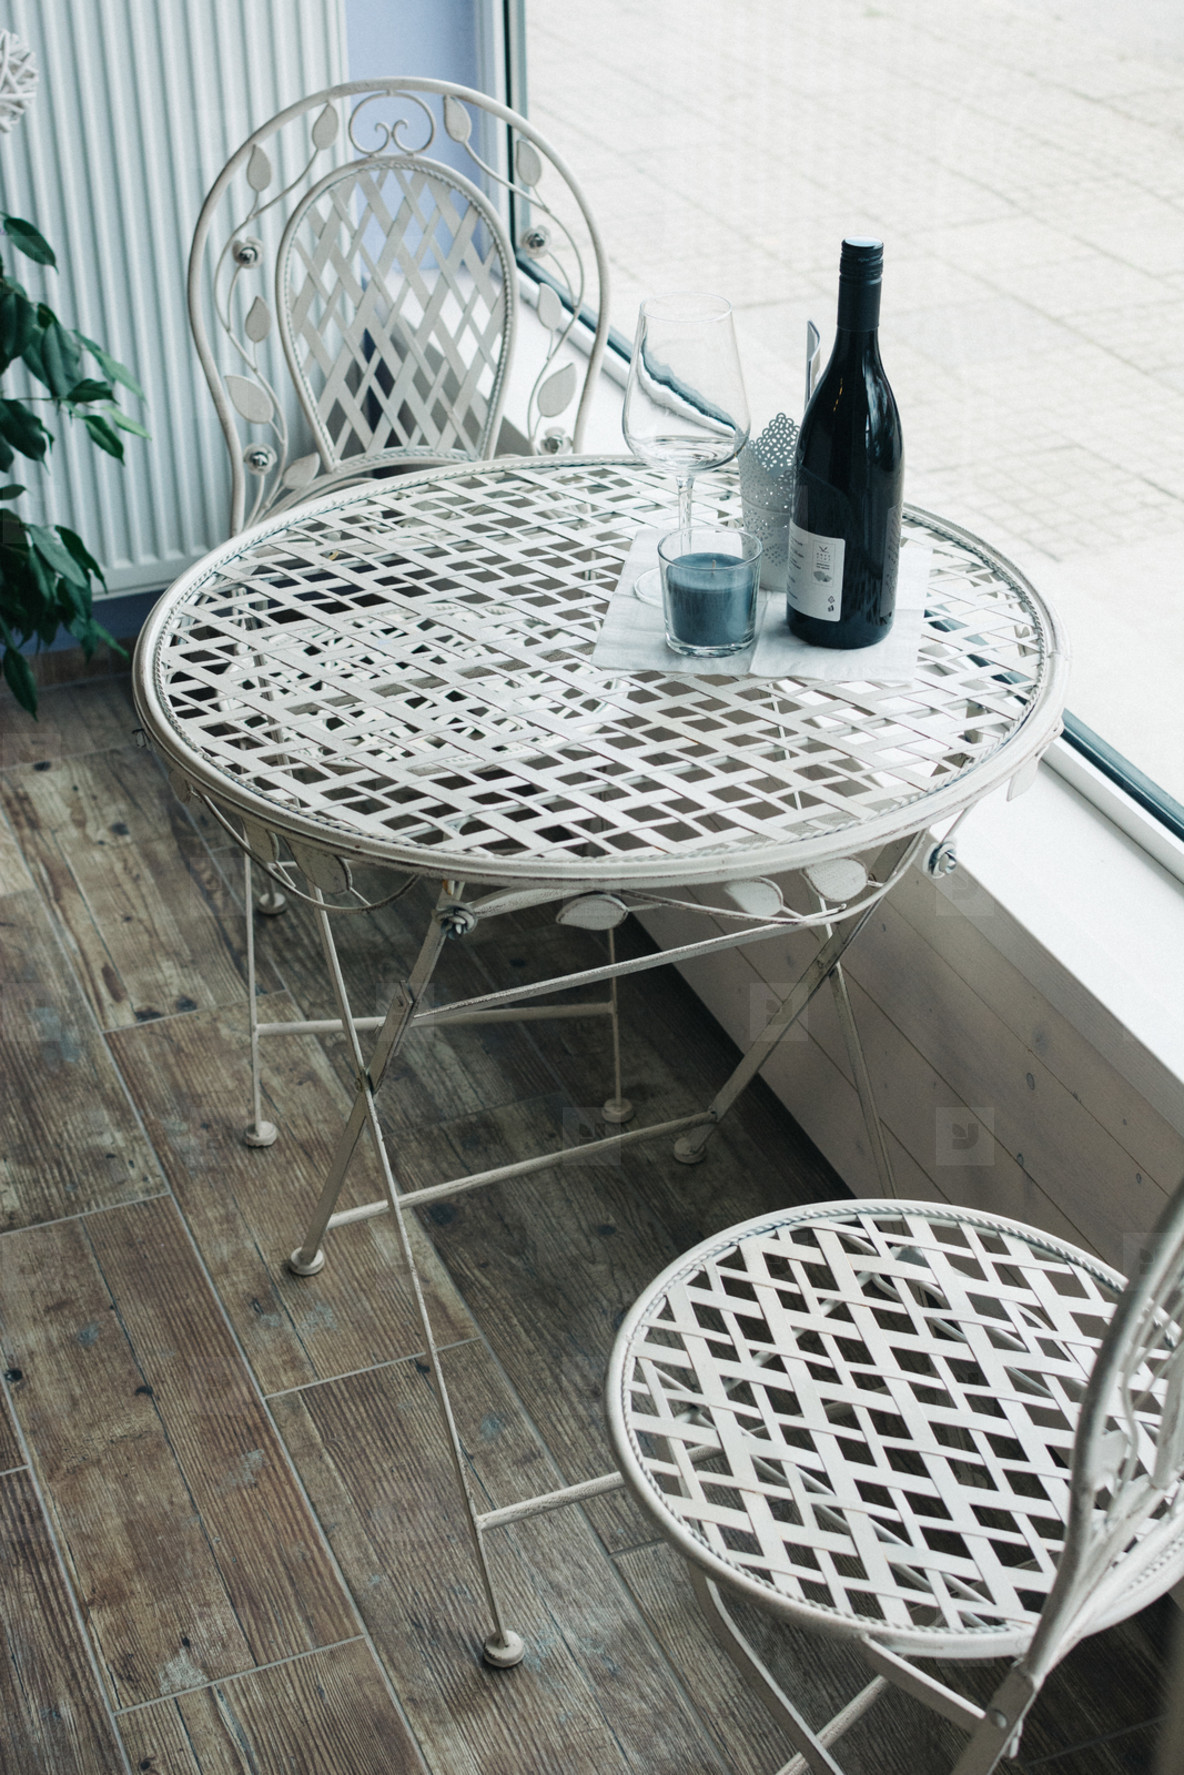 Bottle of wine on a table